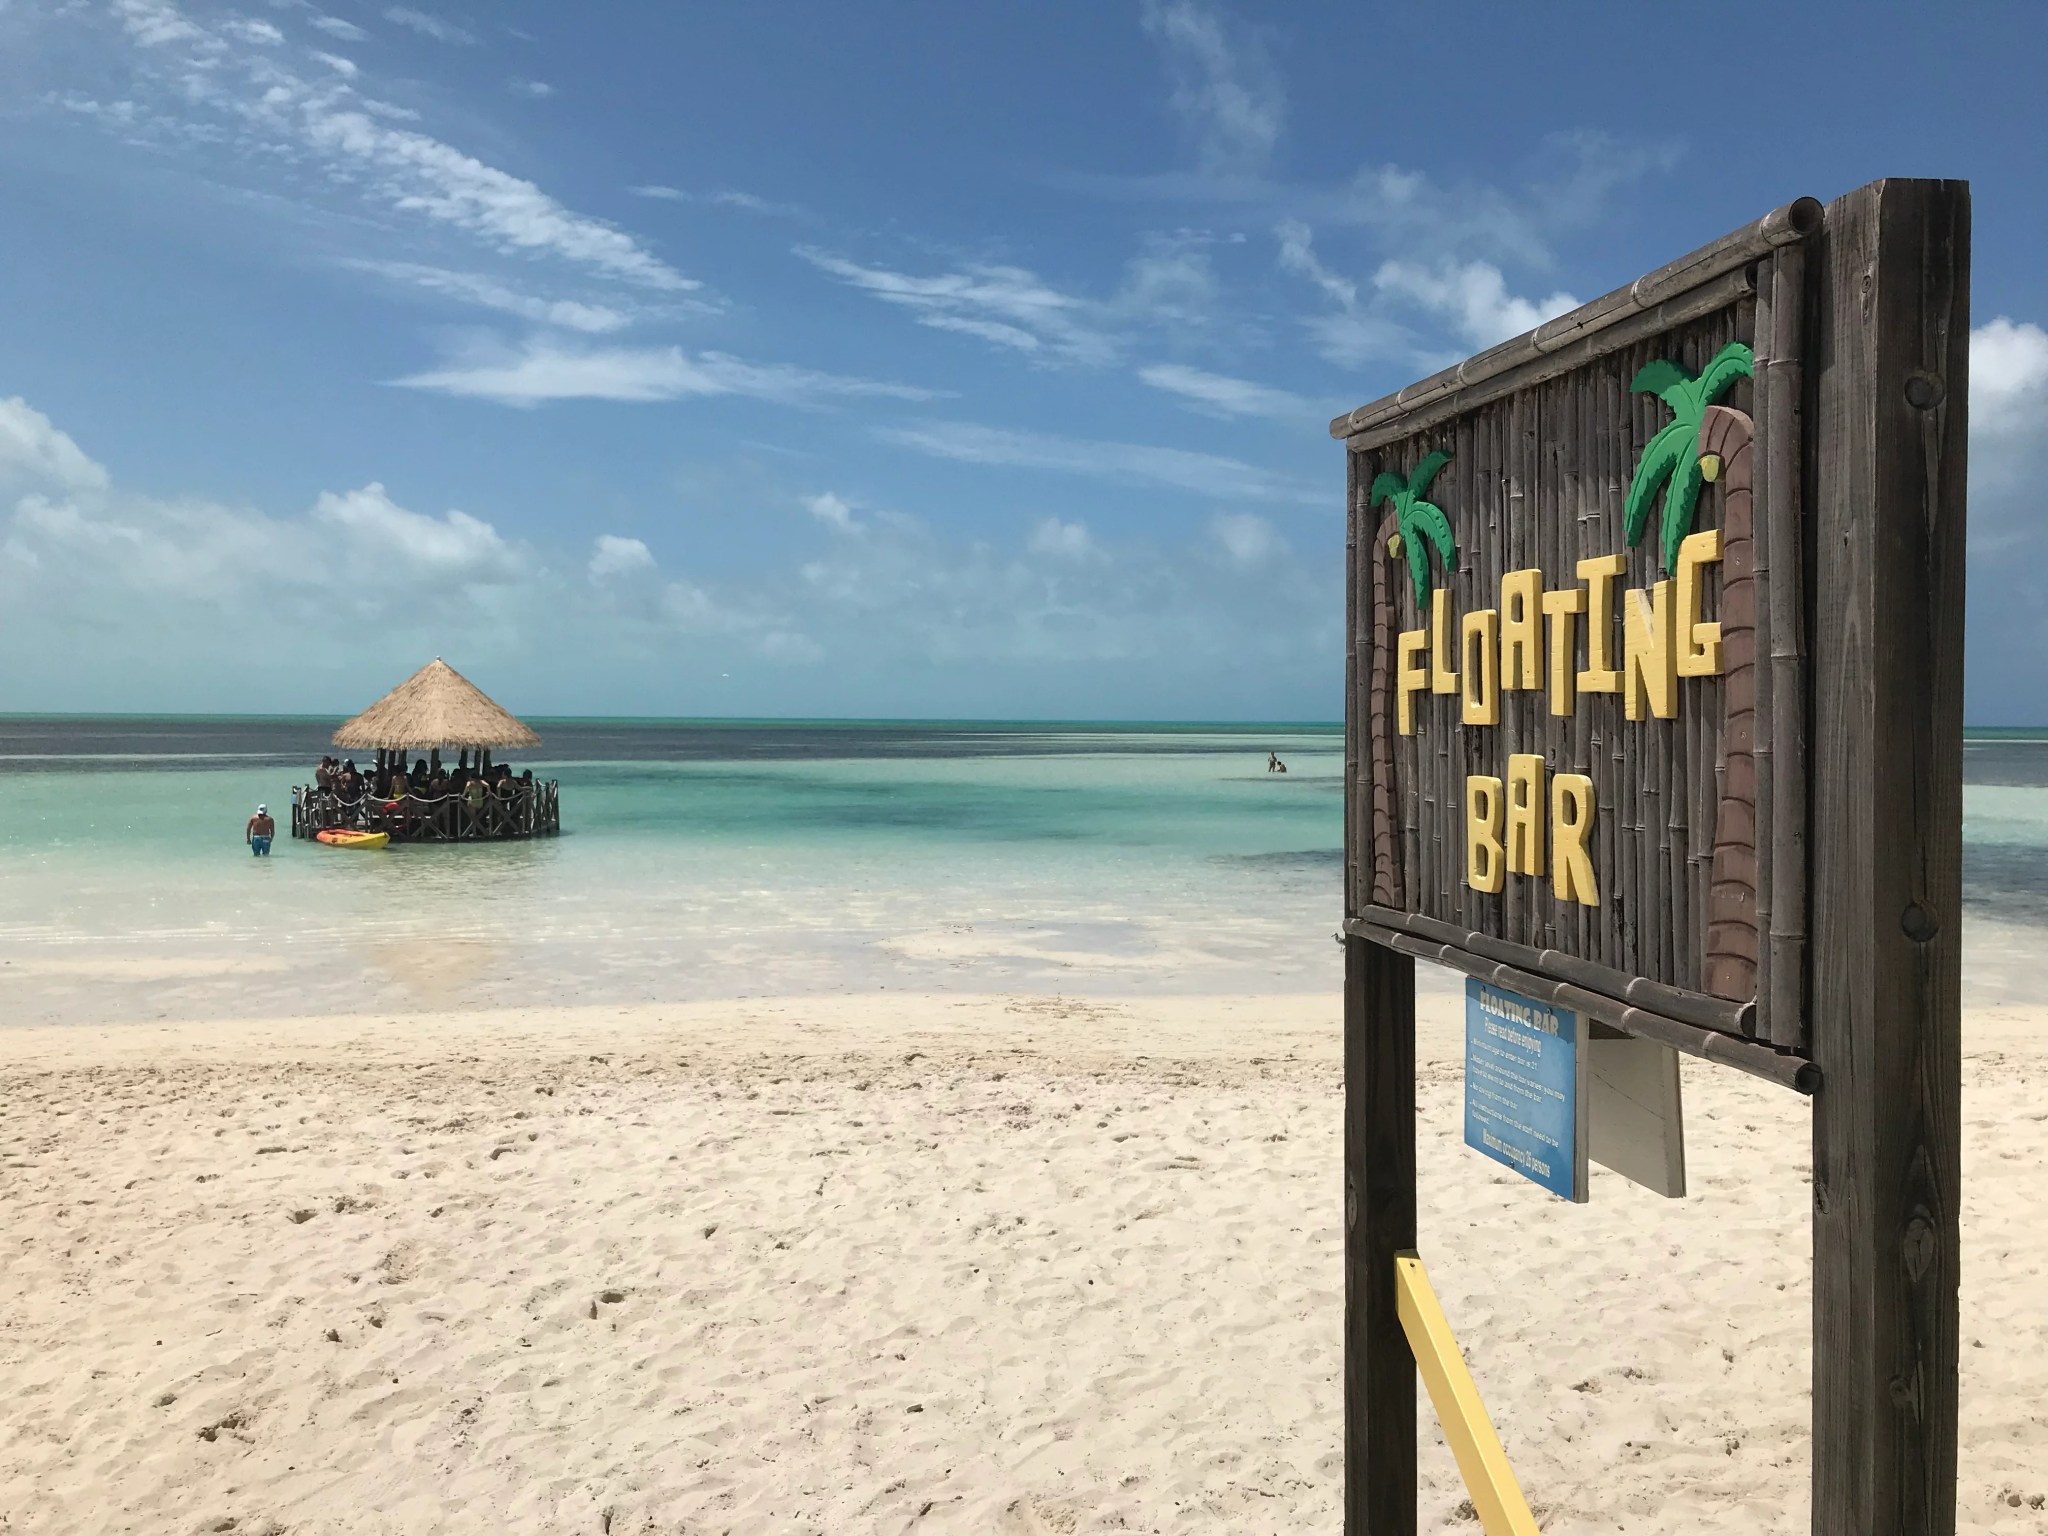 46f5f110c The island also has five complimentary dining venues, but they're nothing  too fancy (think: hot dogs, burgers).